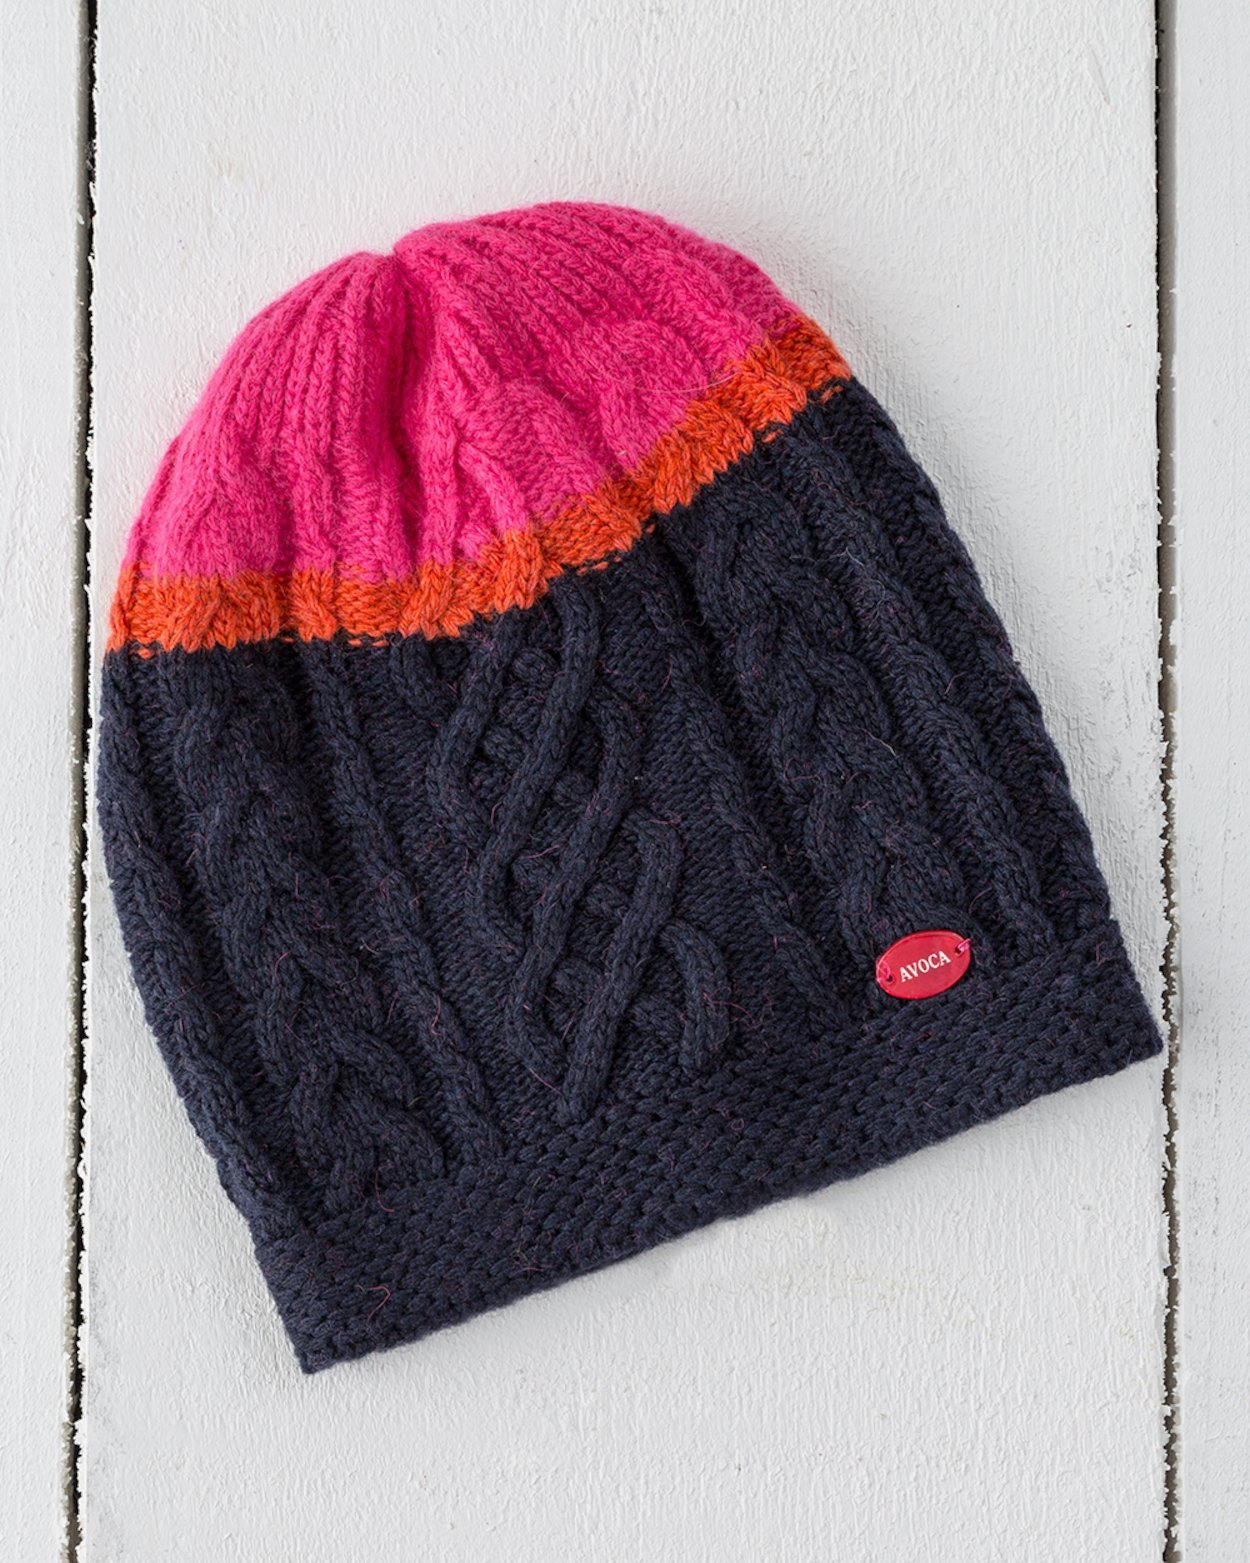 Aran Knit Beanie in Navy and Neon